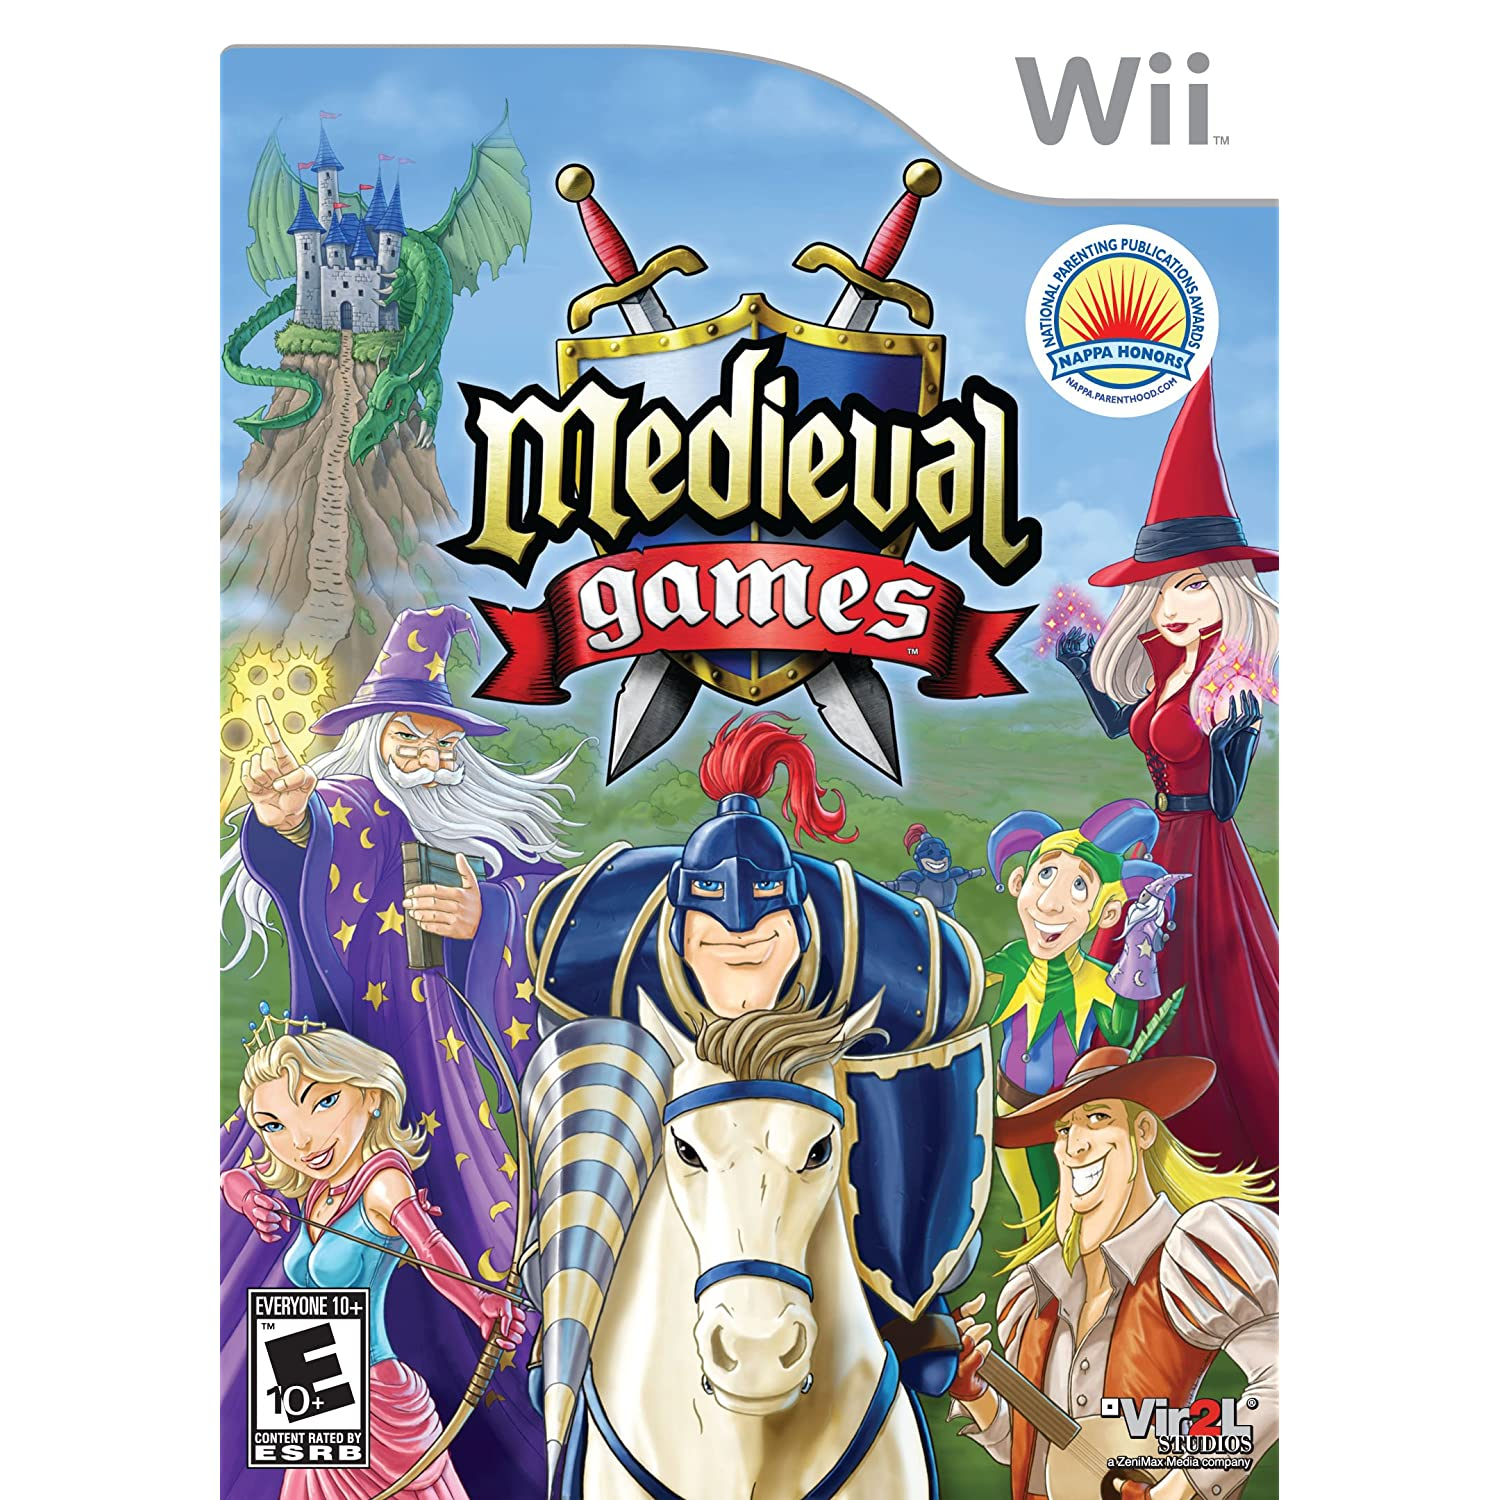 Game, Video Game, Video Games, Wii Game, Nintendo Wii, Medieval Games